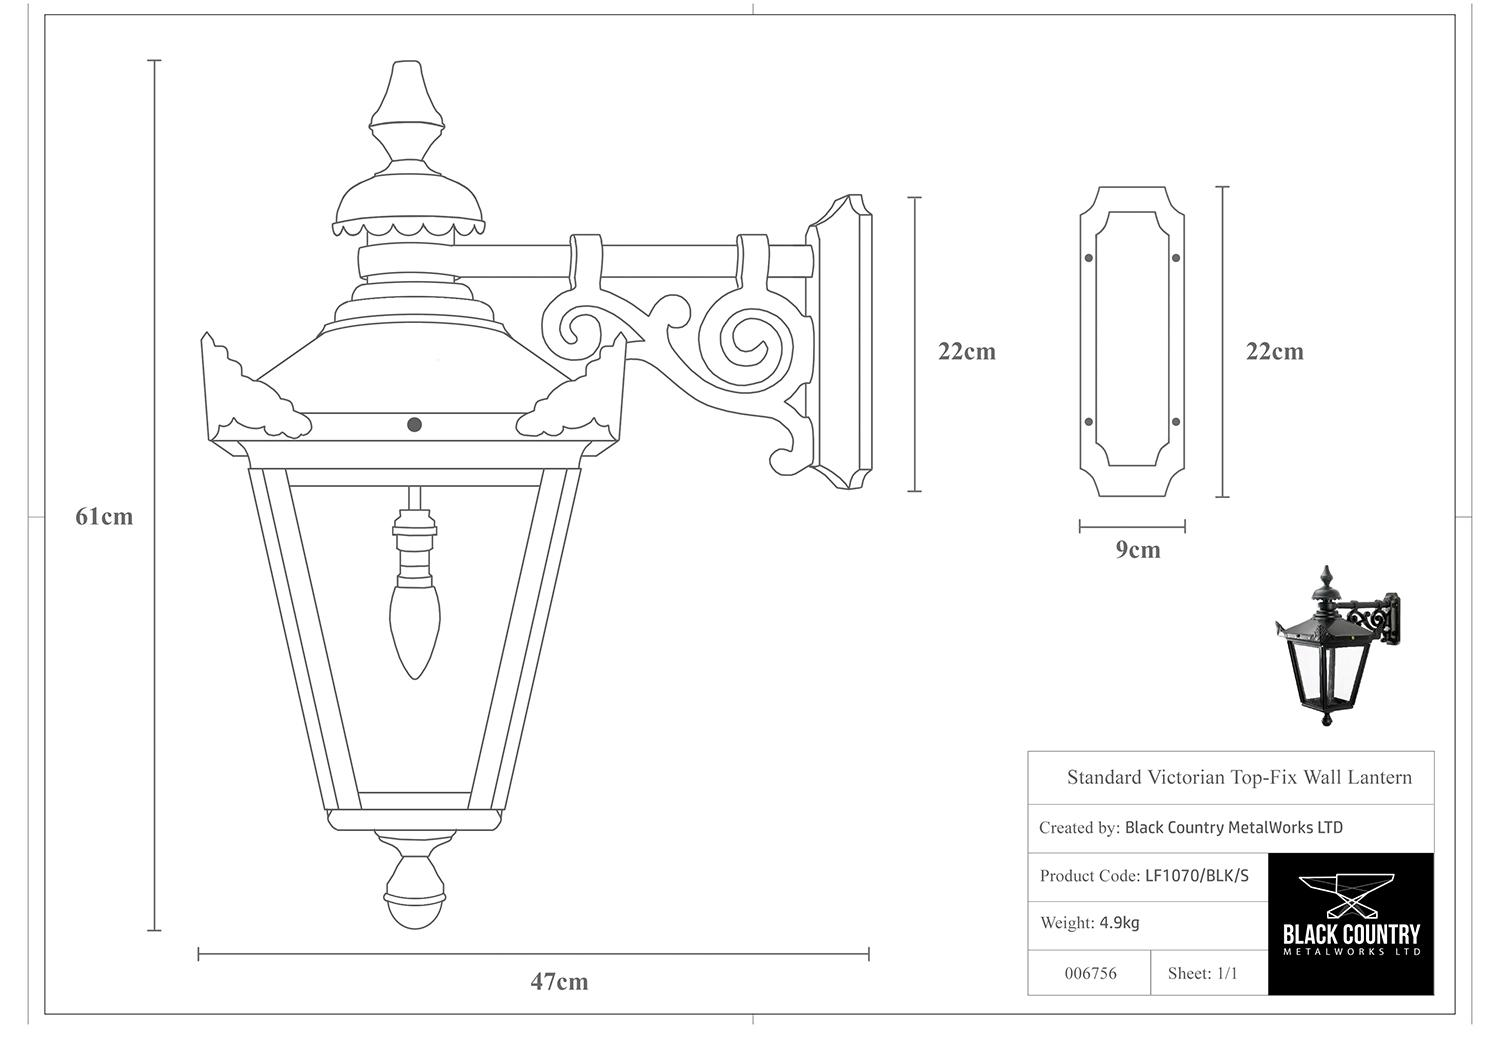 Standard Victorian Top-Fix Wall Lantern Technical Drawing